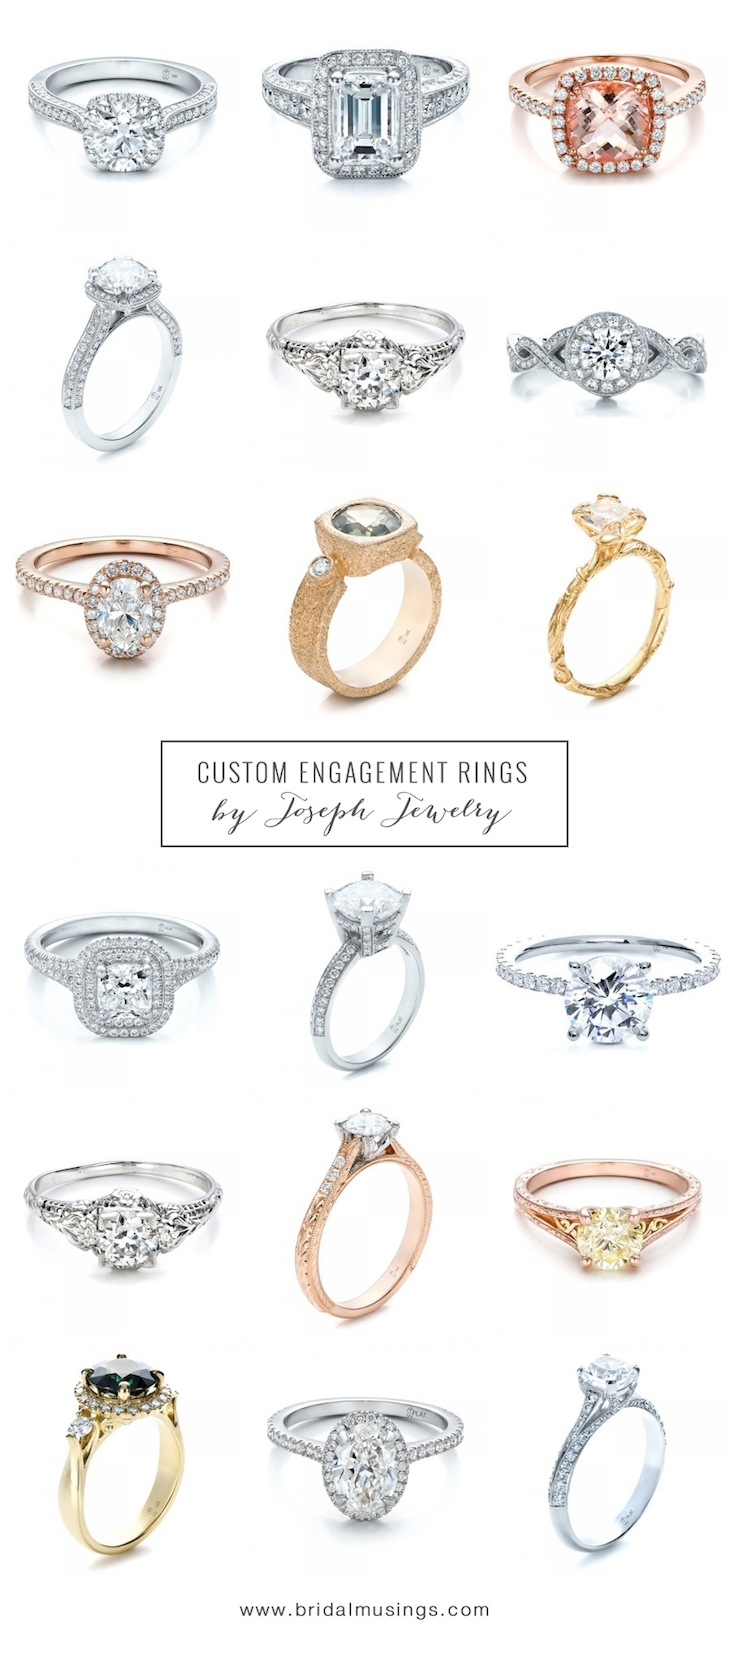 Unique Custom Engagement Rings By Joseph Jewelry